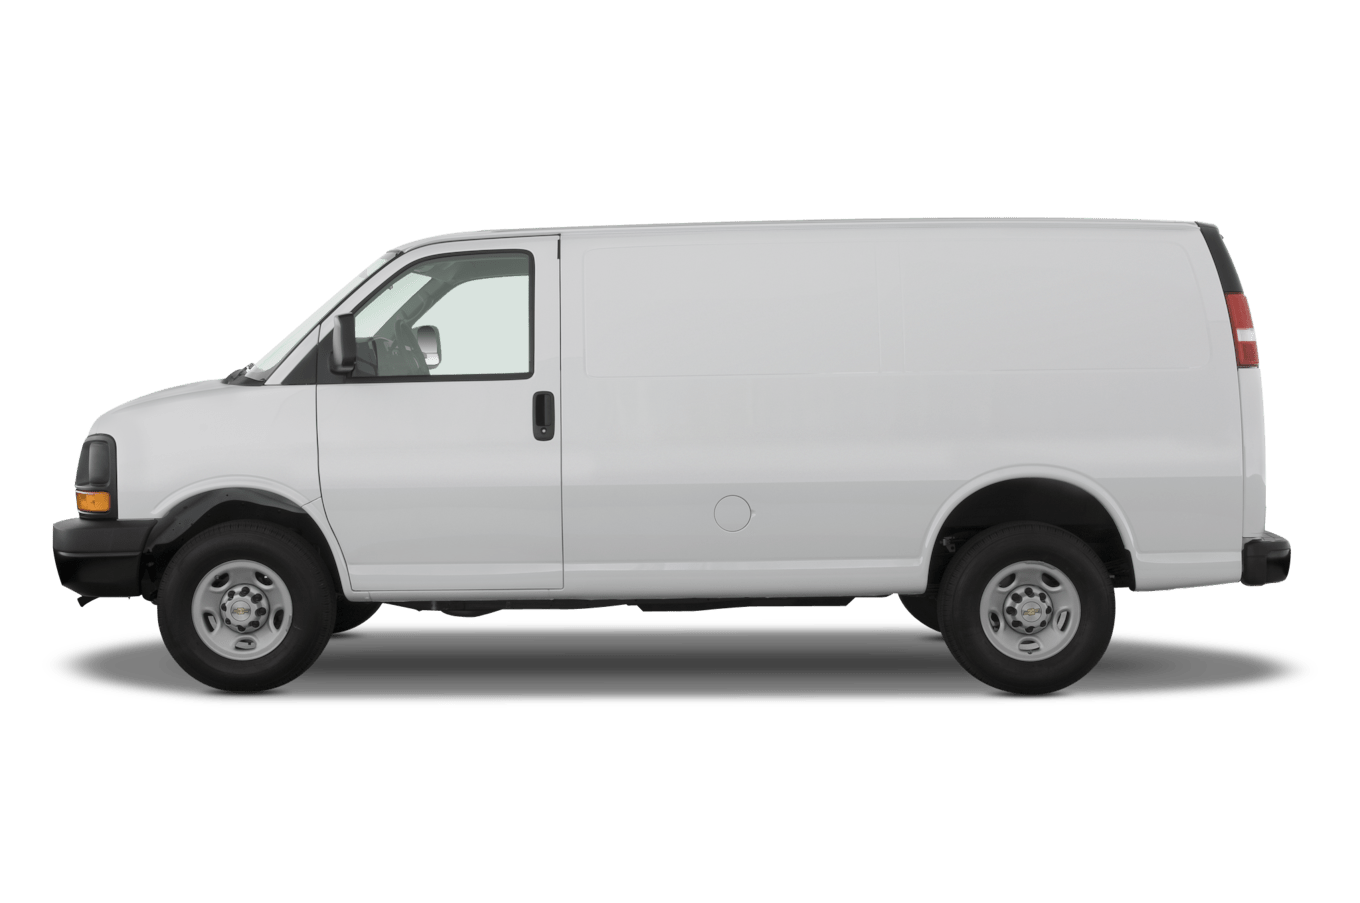 hight resolution of  2013 chevrolet express cargo van 2500 work van hd side view 2013 chevrolet express reviews and 2012 chevy express 2500 fuse box